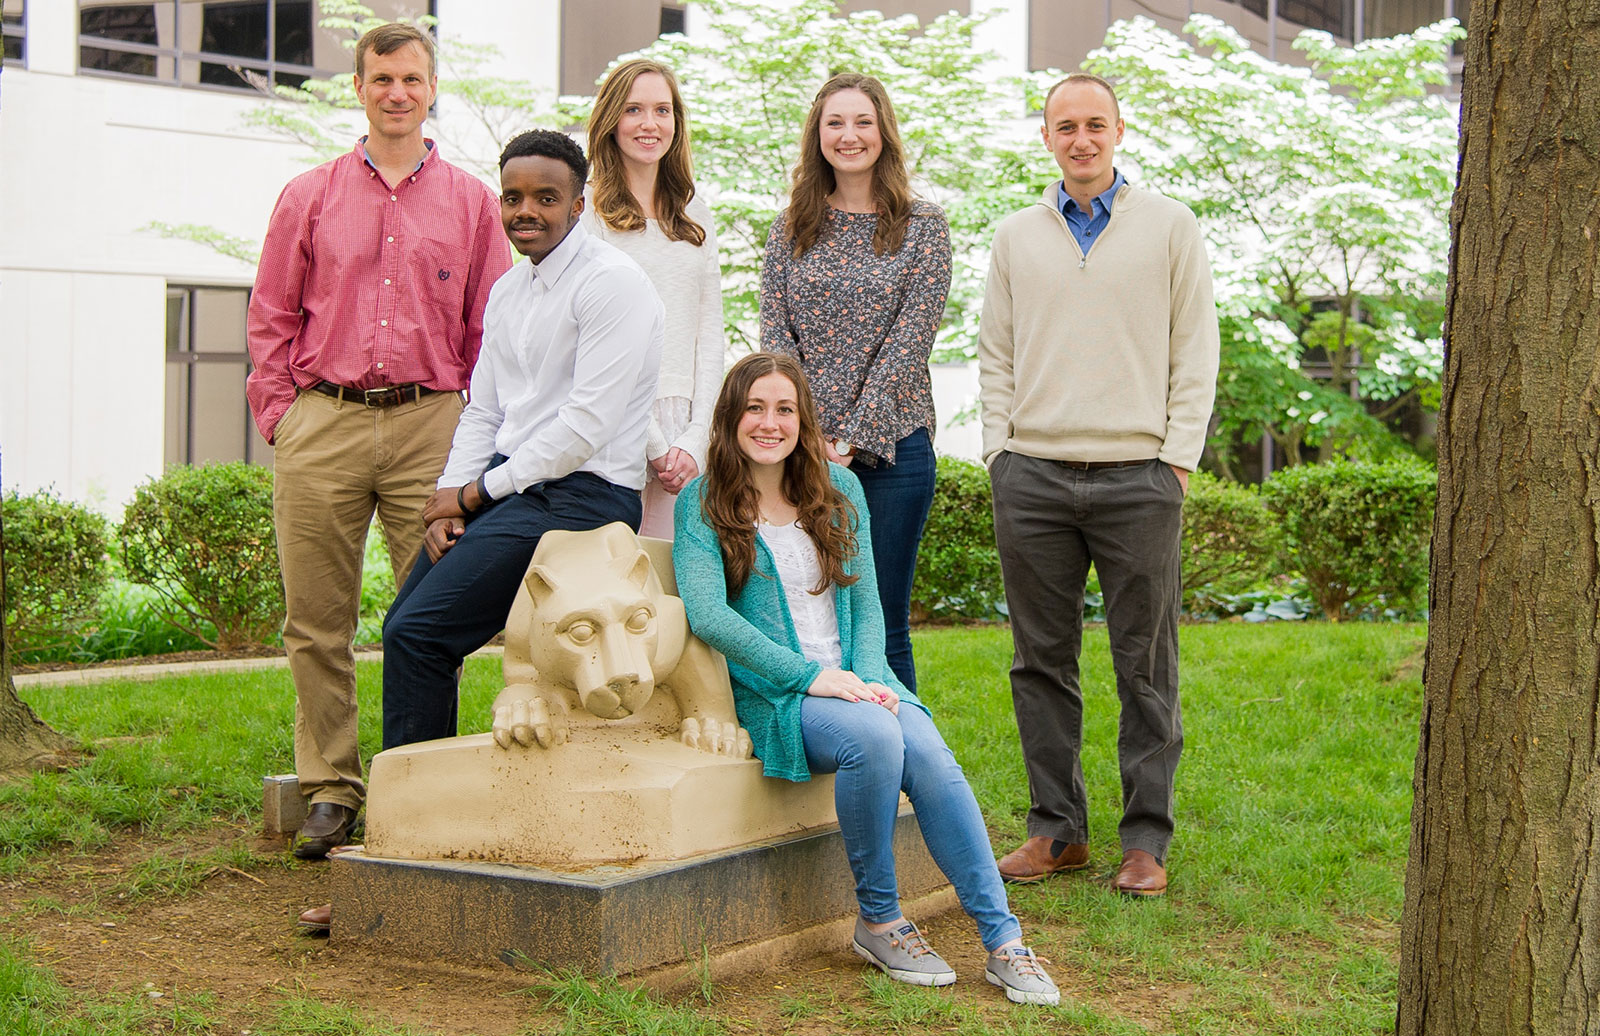 Student participants in the American Heart Association Undergraduate Summer Fellowship are seen in 2018 with Program Director Dr. Christopher Yengo. The students and Dr. Yengo are pictured outdoors, with a tree behind them and a statue of Penn State's Nittany Lion mascot in front of them.